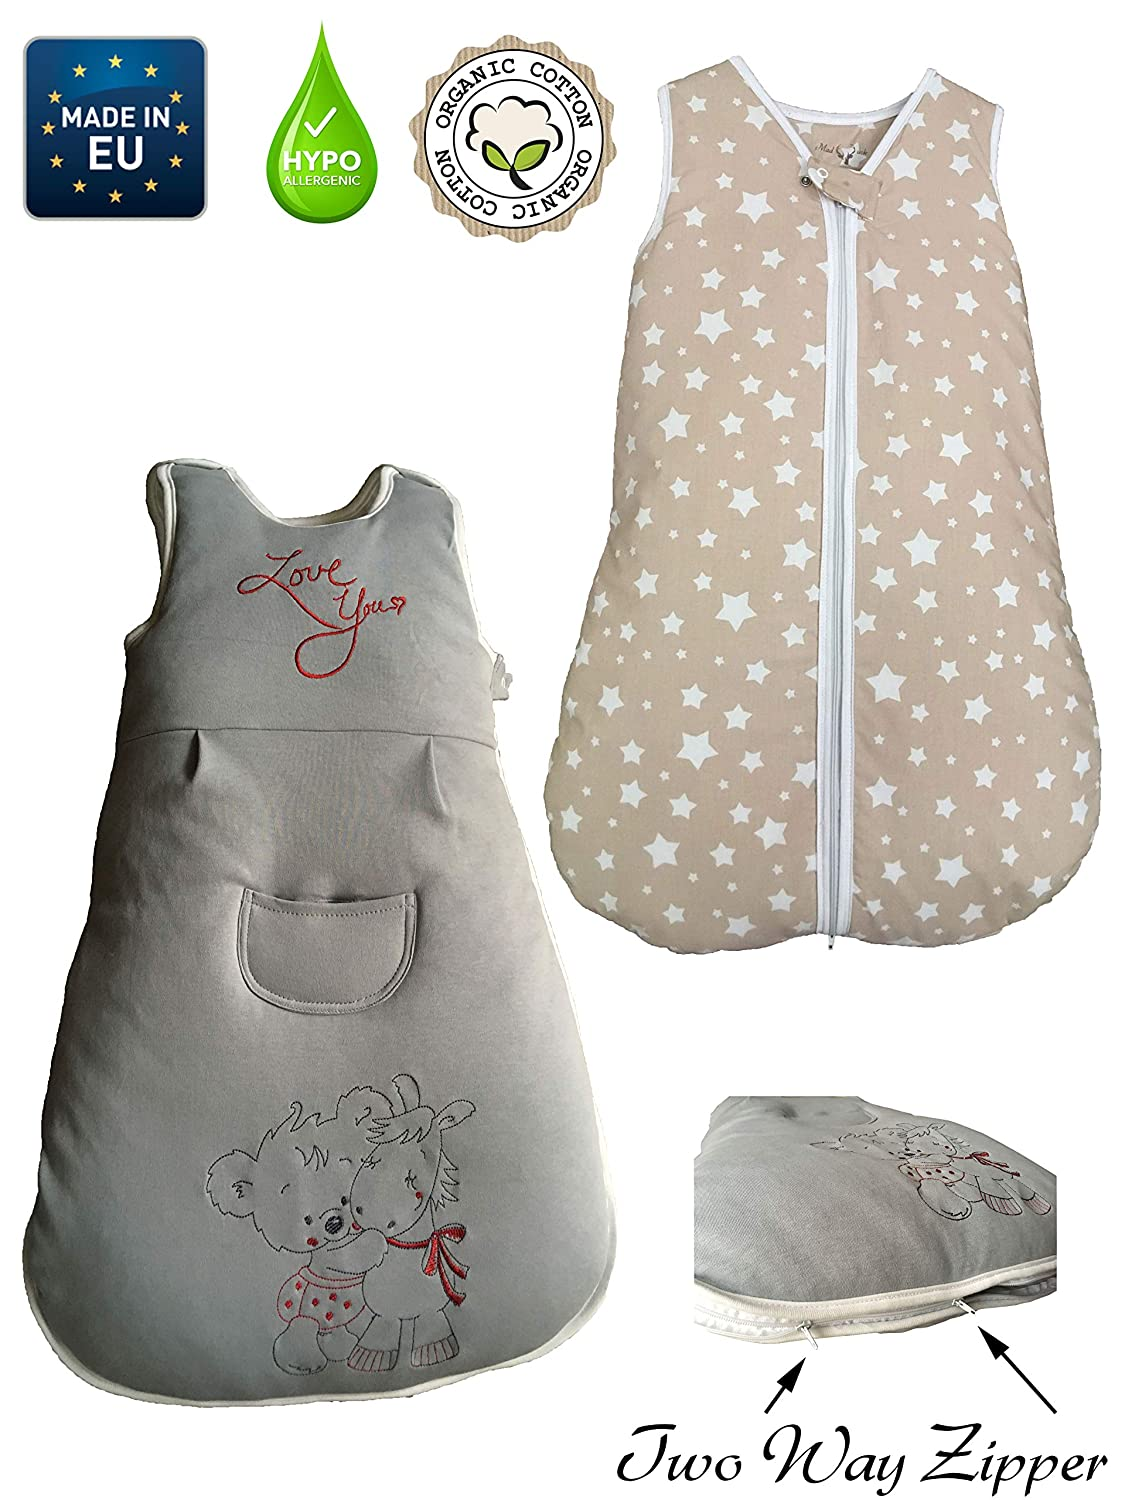 Sleeping Bag Baby Newborn: 2,5 TOG, 0-6 Months, 100% Organic cotton, 70cm, Newborn, Two- way middle zip, White Stars, Beige, Girls and Boys